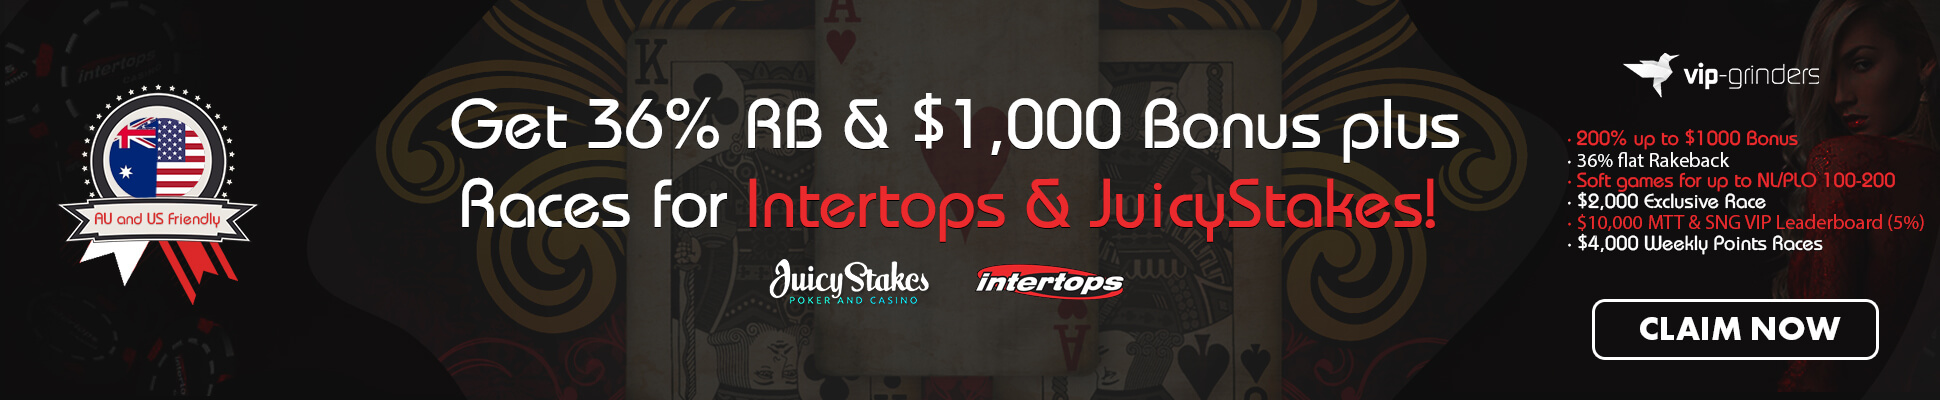 intertips and juicystakes slider december